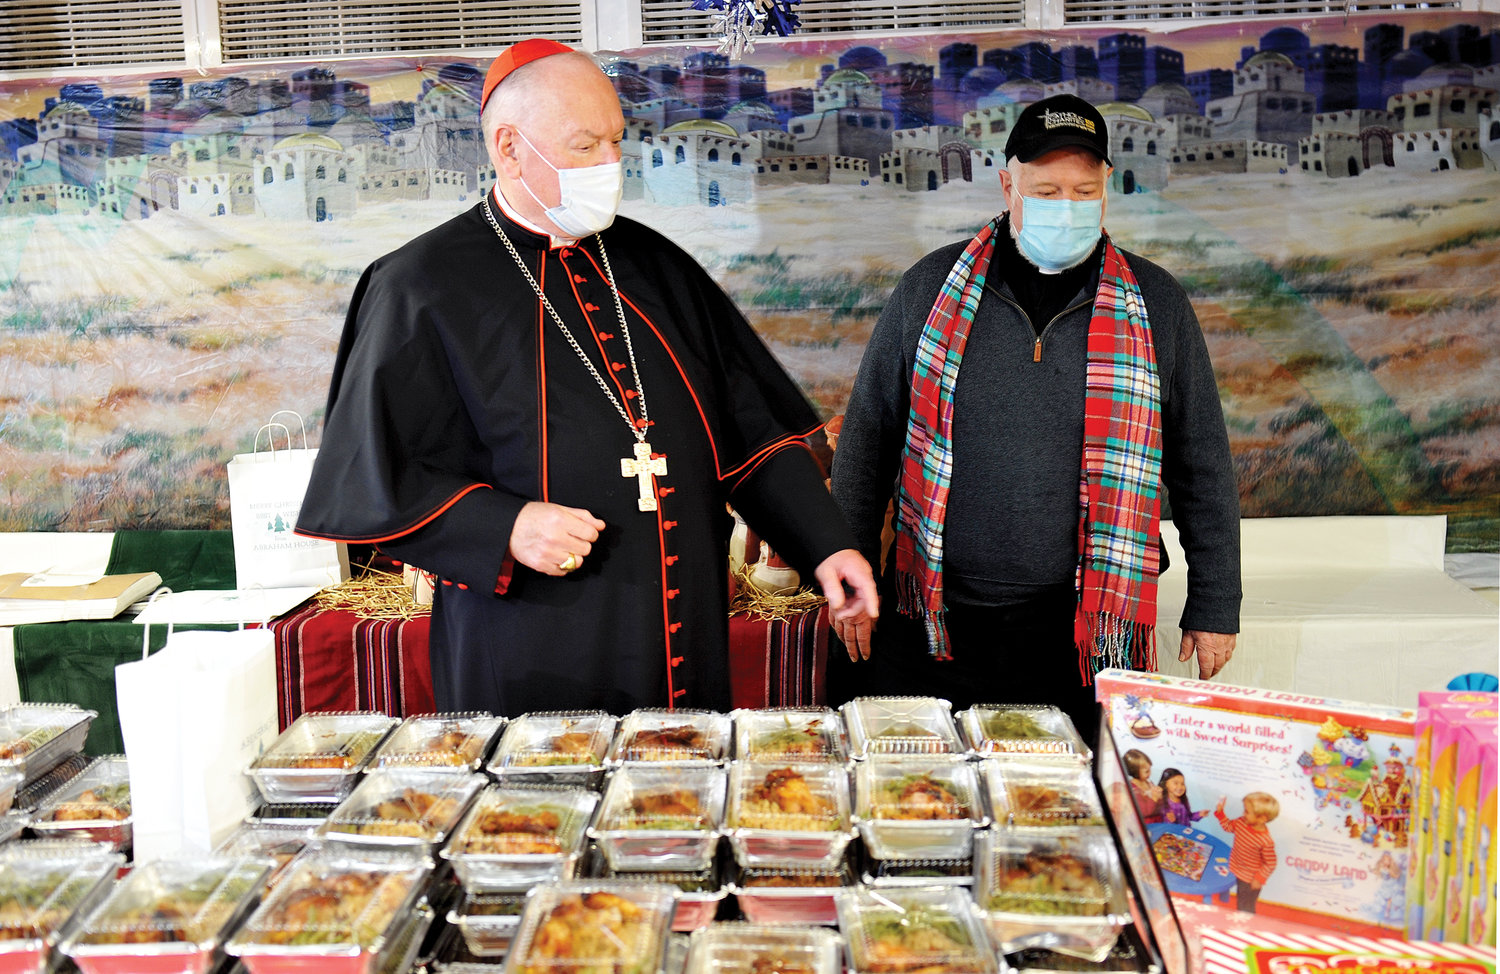 At Abraham House Dec. 22 in the Mott Haven section of the Bronx, Cardinal Dolan and Msgr. Kevin Sullivan, executive director of archdiocesan Catholic Charities, stand near the food provided through Abraham House, an affiliate of Catholic Charities.